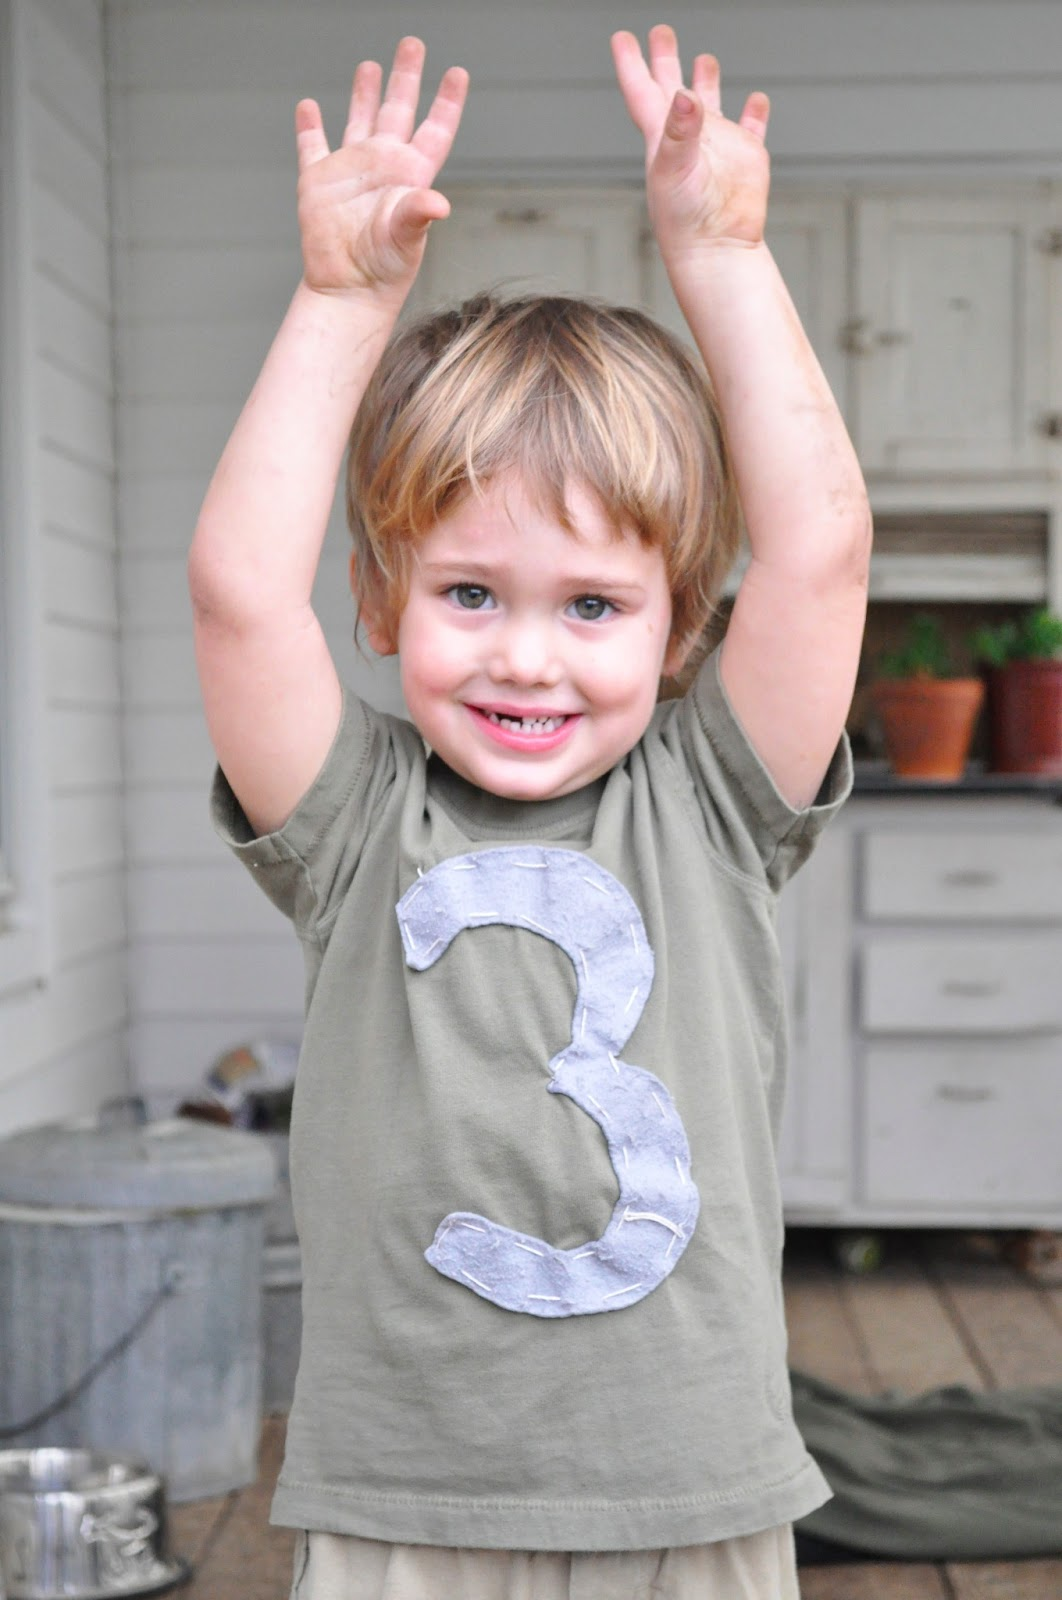 The Supermanns My 3 year old boy